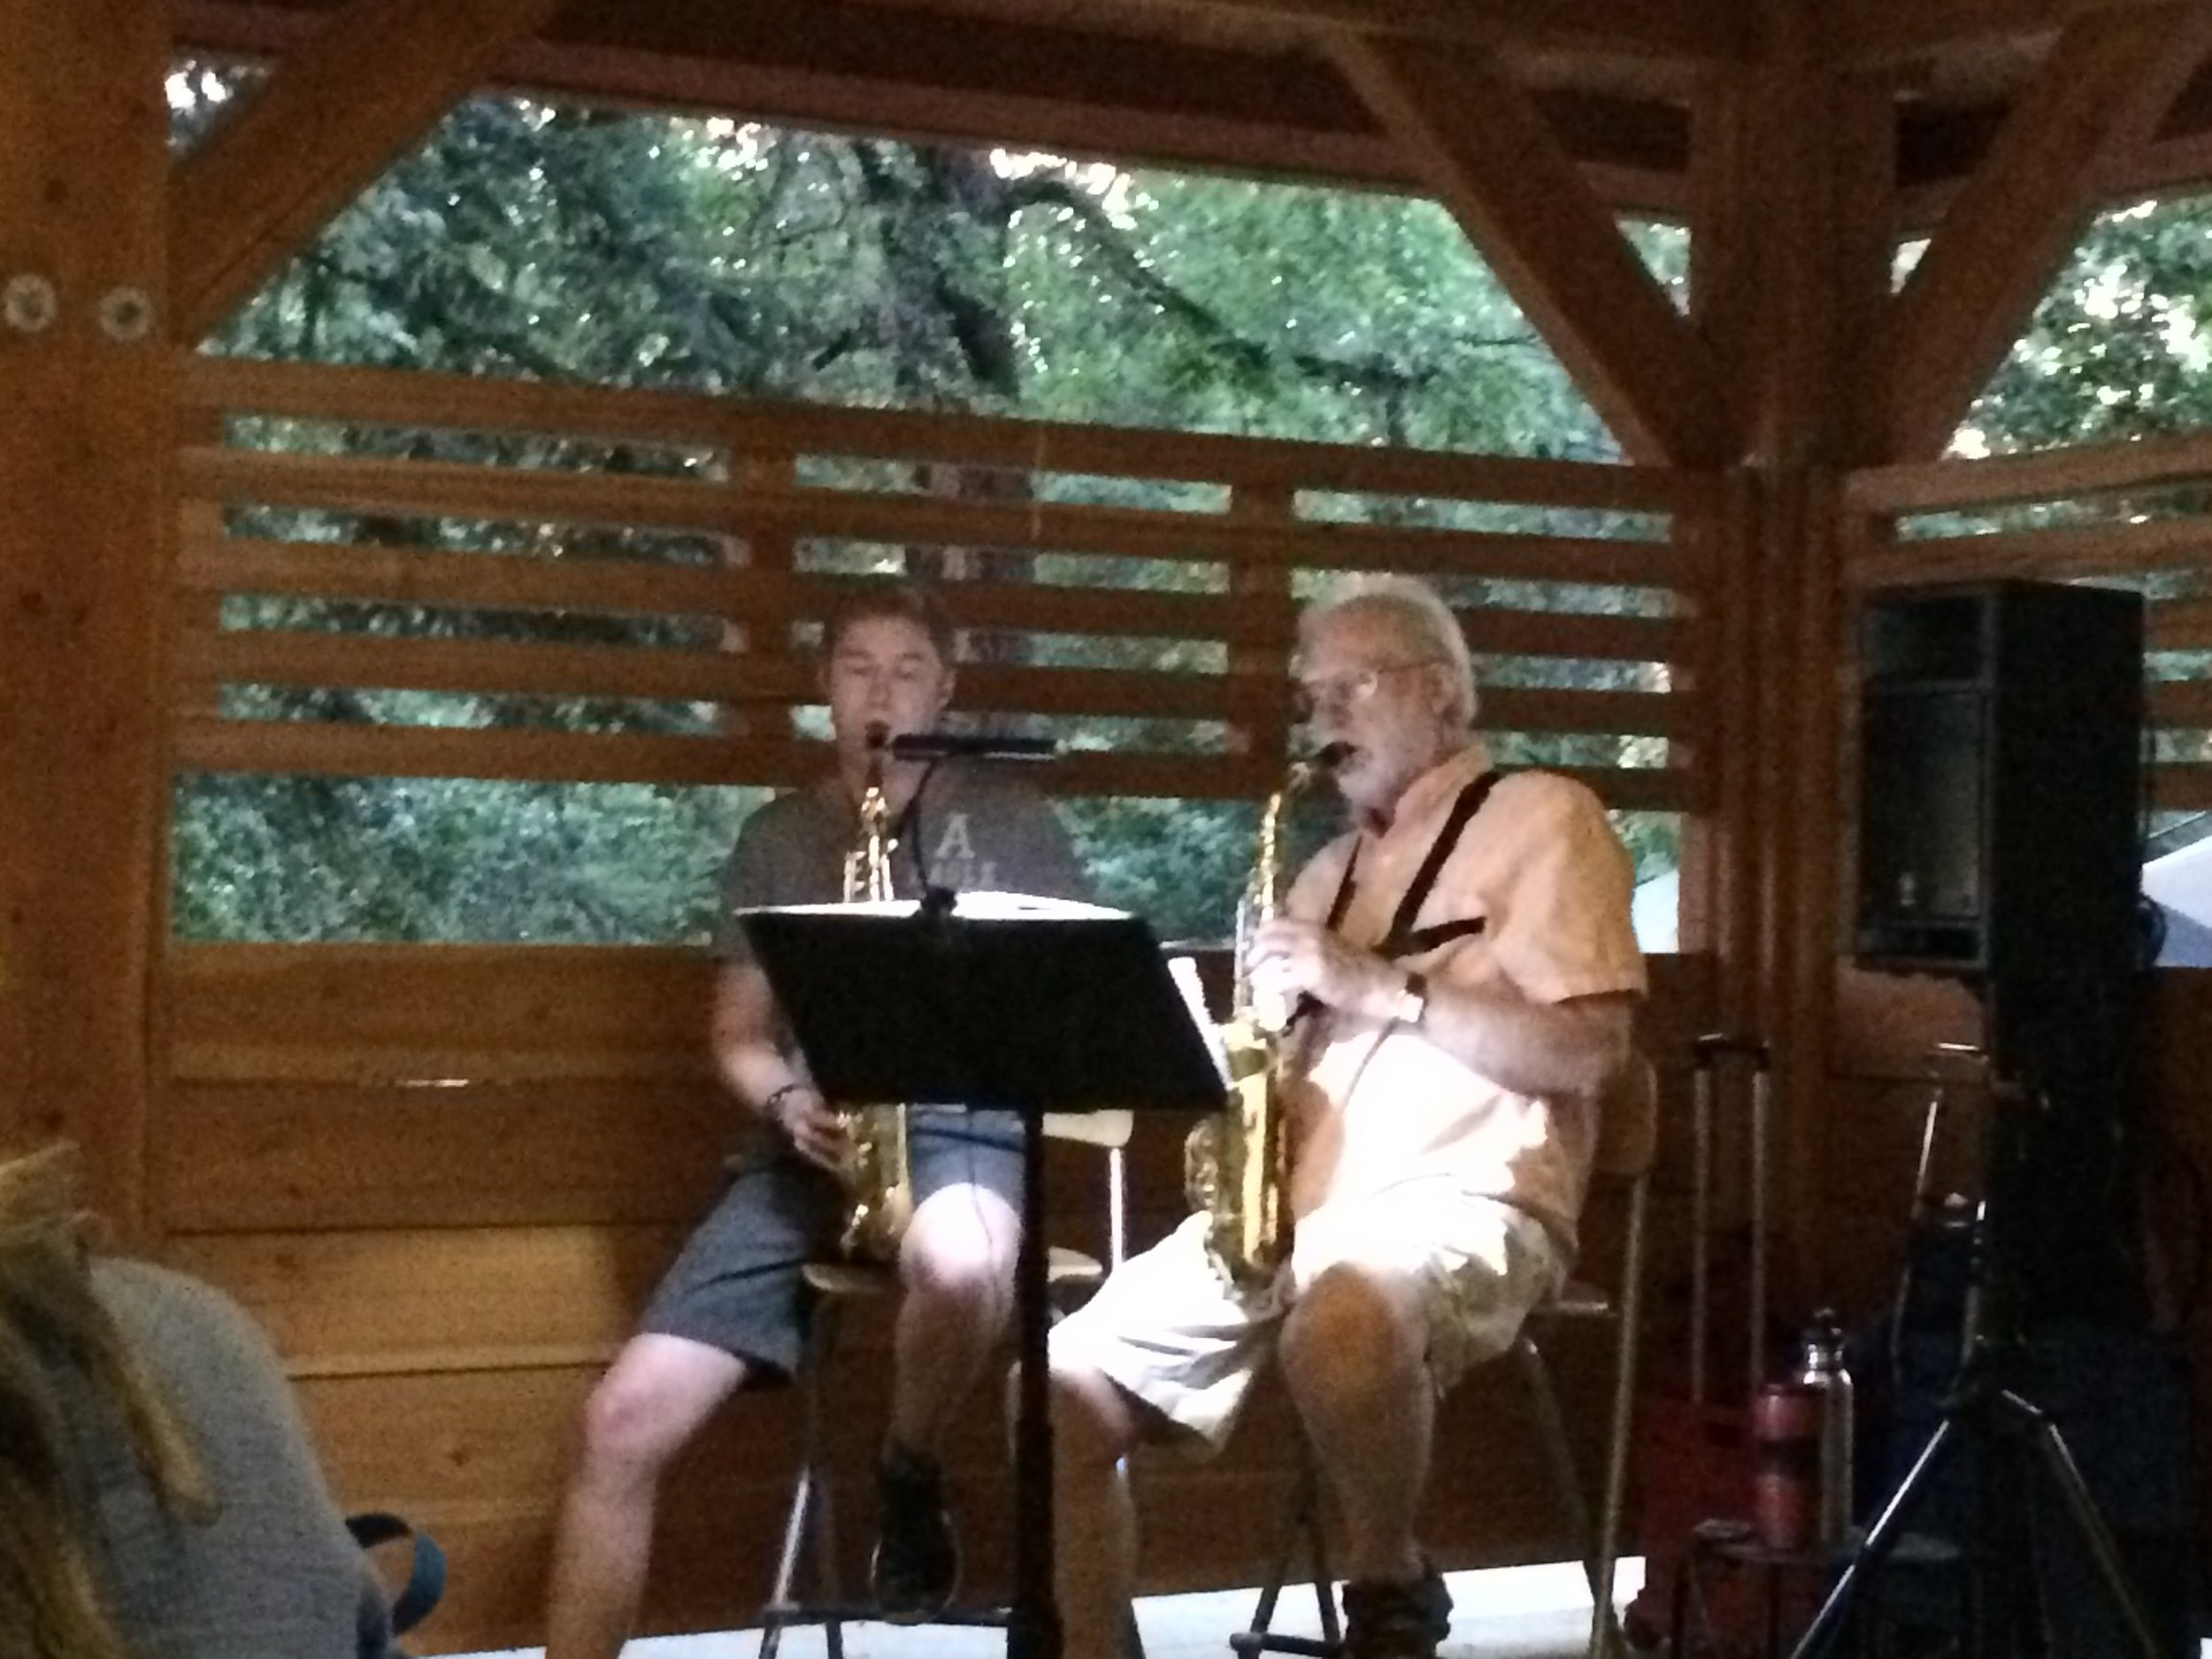 Tuesday evening Jazz Concert with Don Wade and Ross Thompson